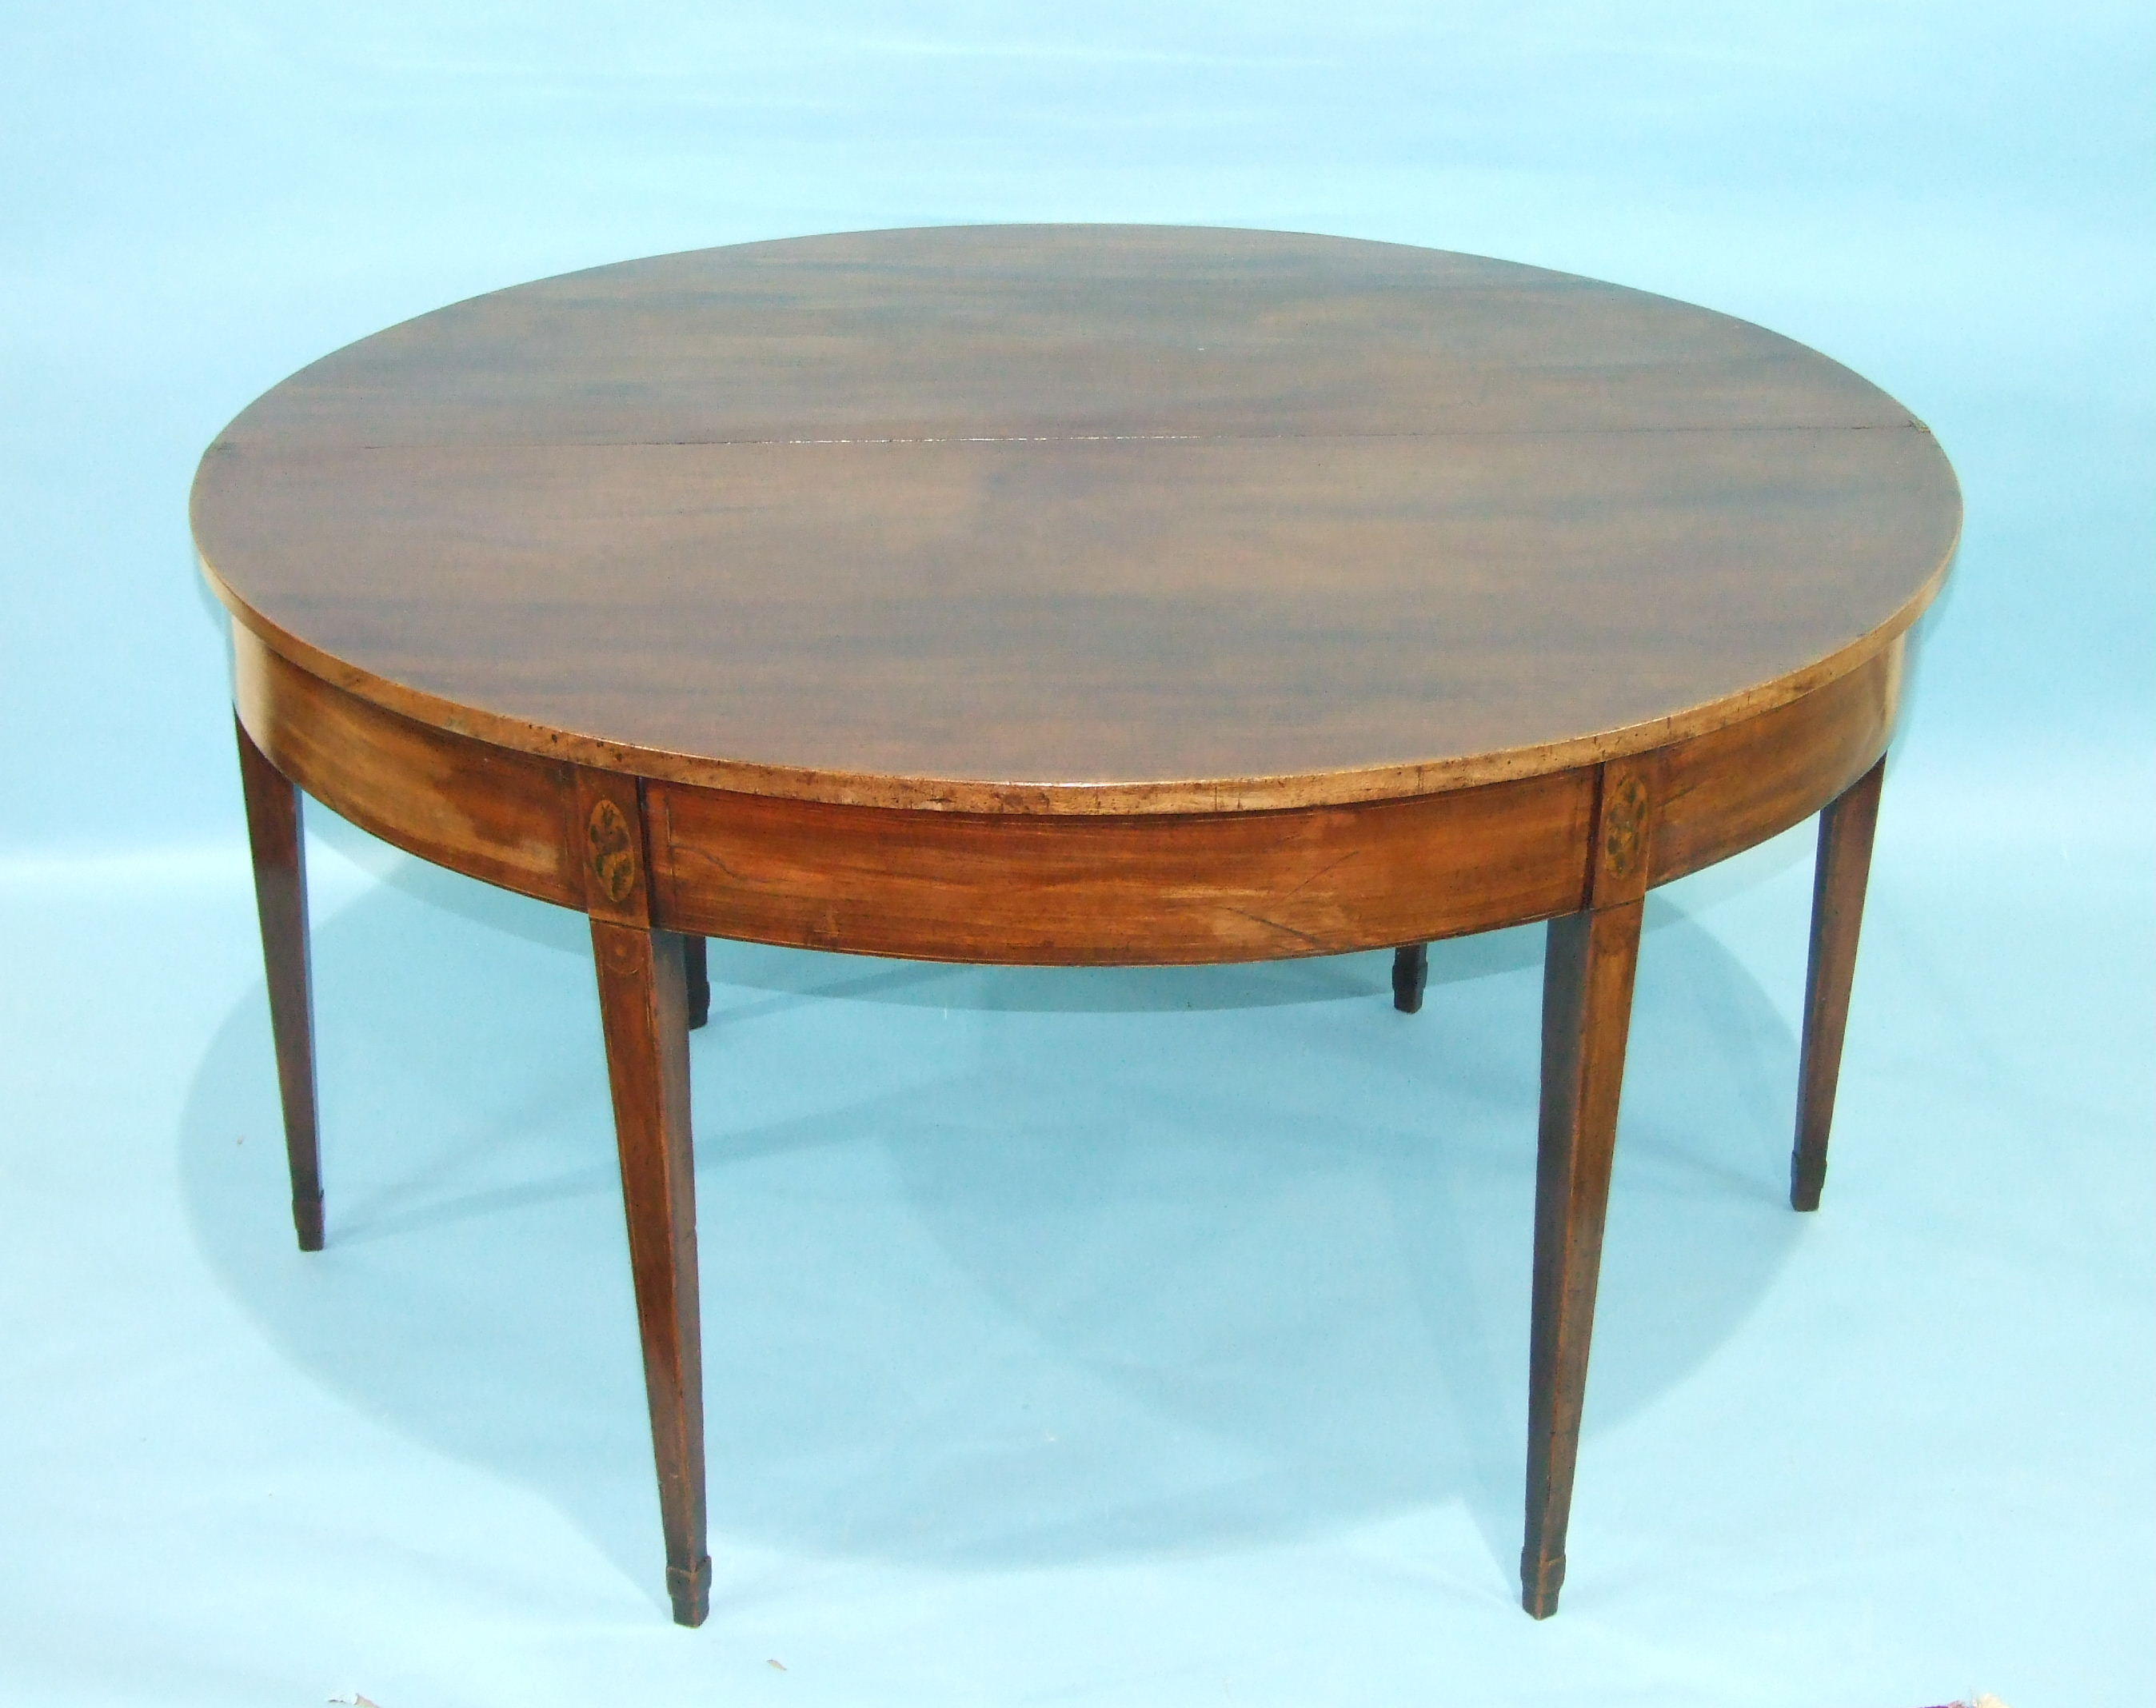 A Georgian mahogany gate-leg breakfast table, the circular fold-over top with inlaid shell motif, on